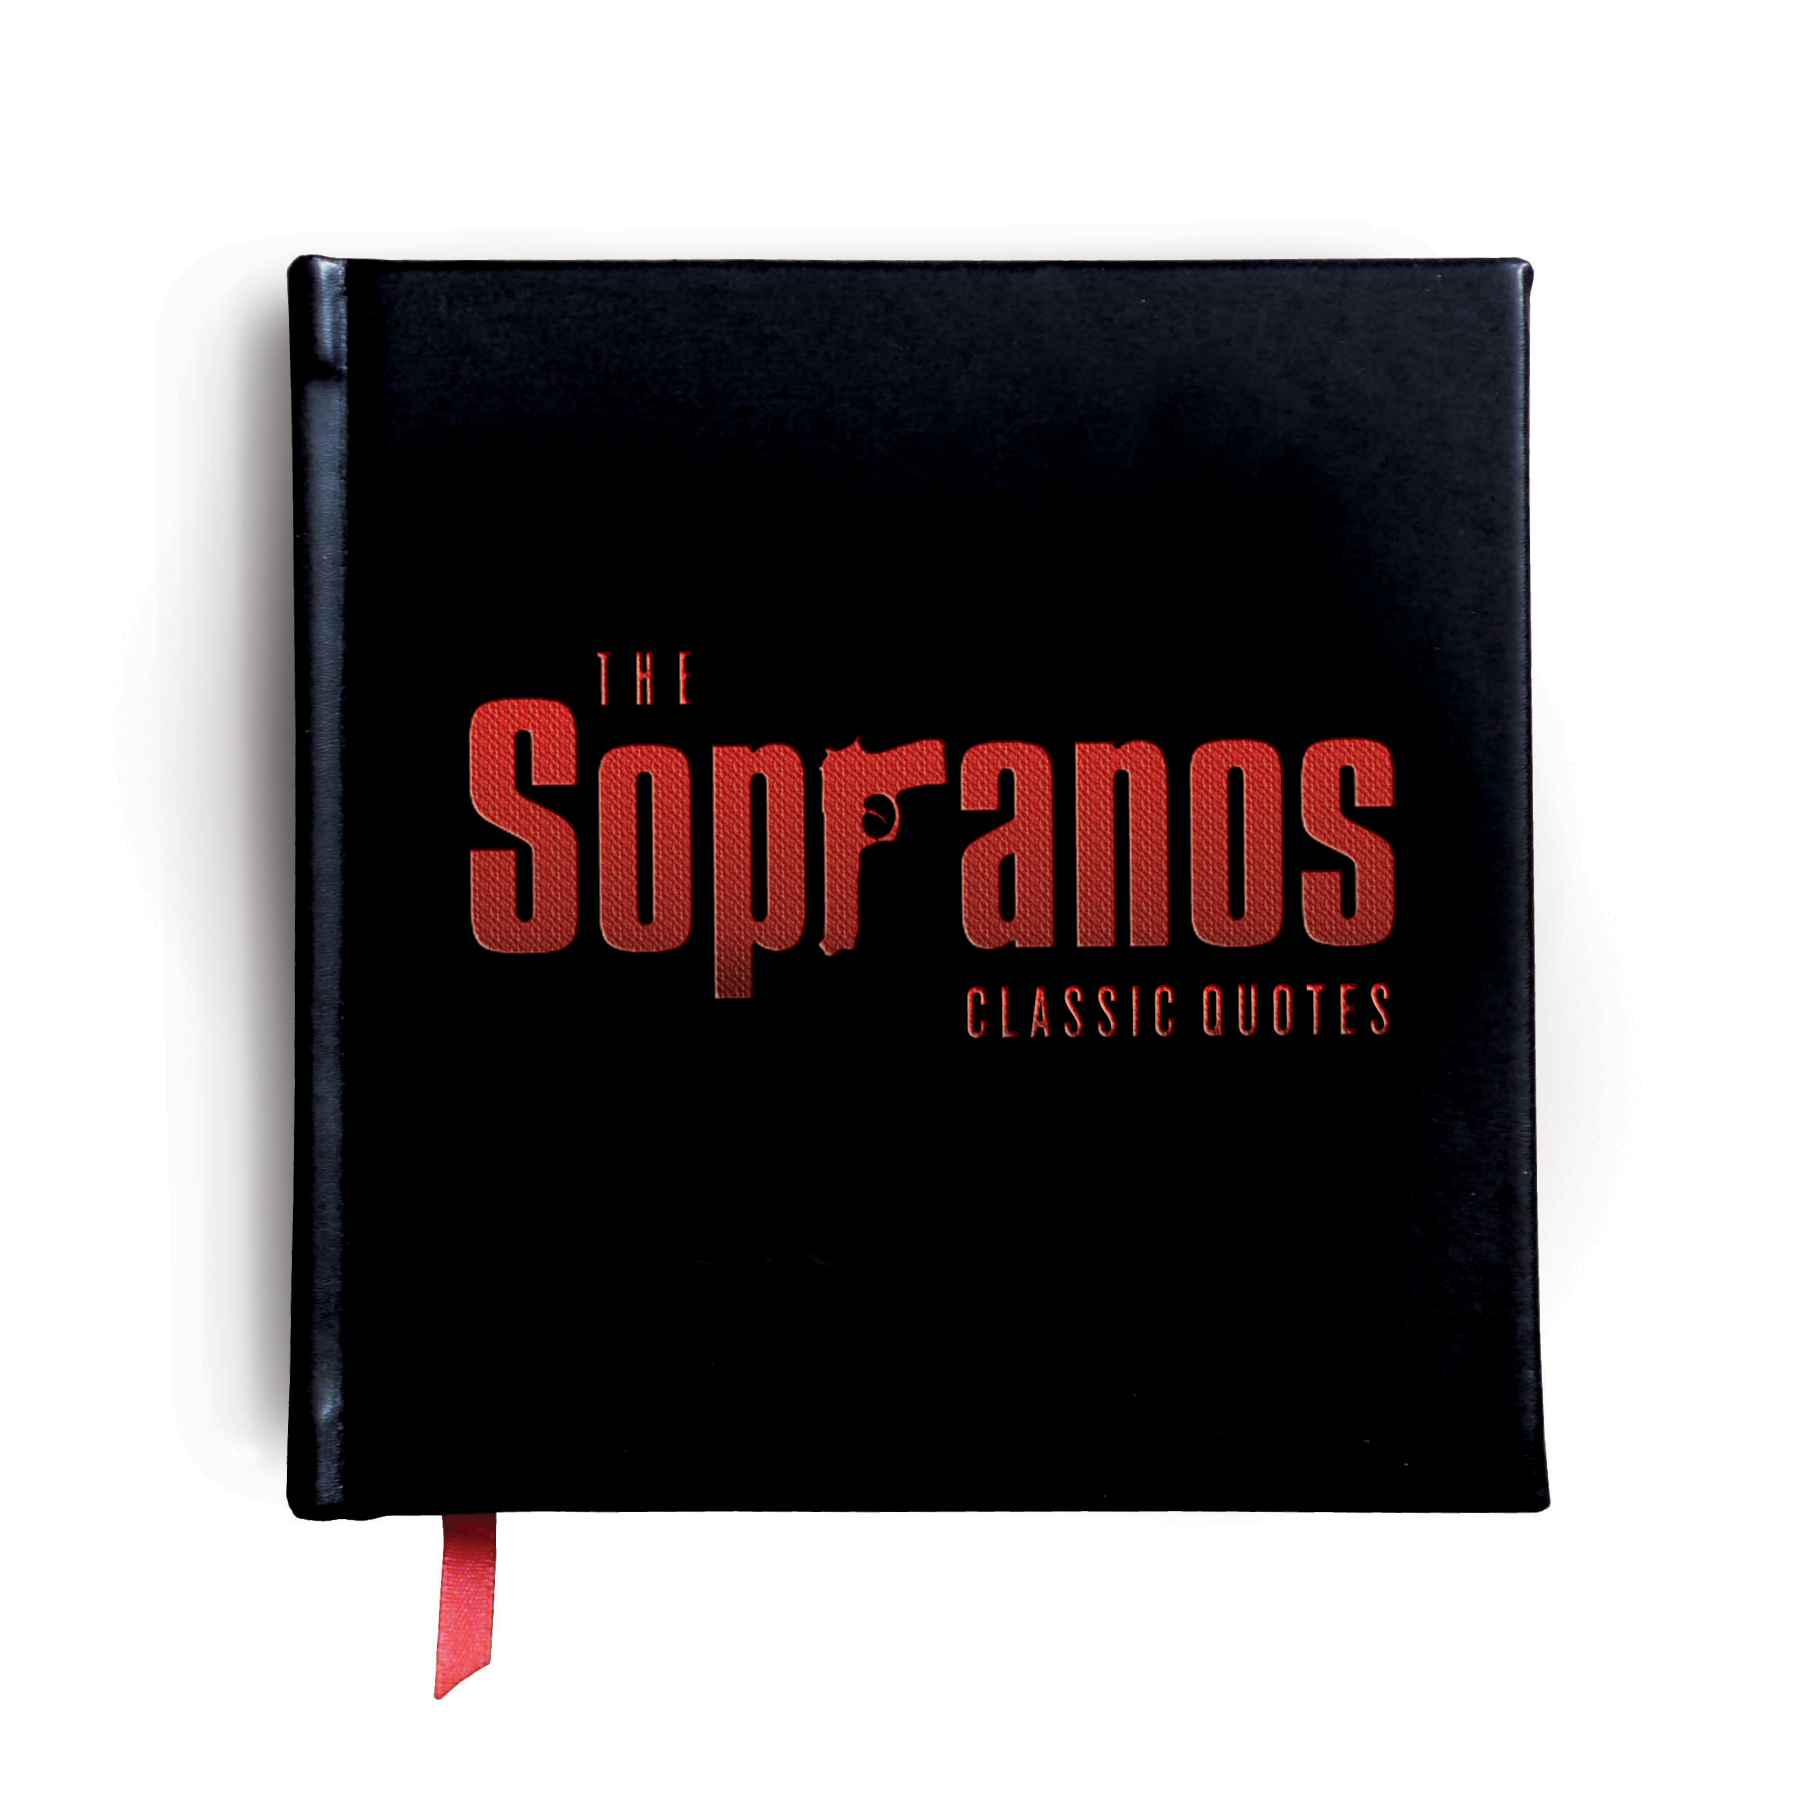 Classic Quotes The Sopranos The Classic Quotes  Bookdavid Chase Carlo De